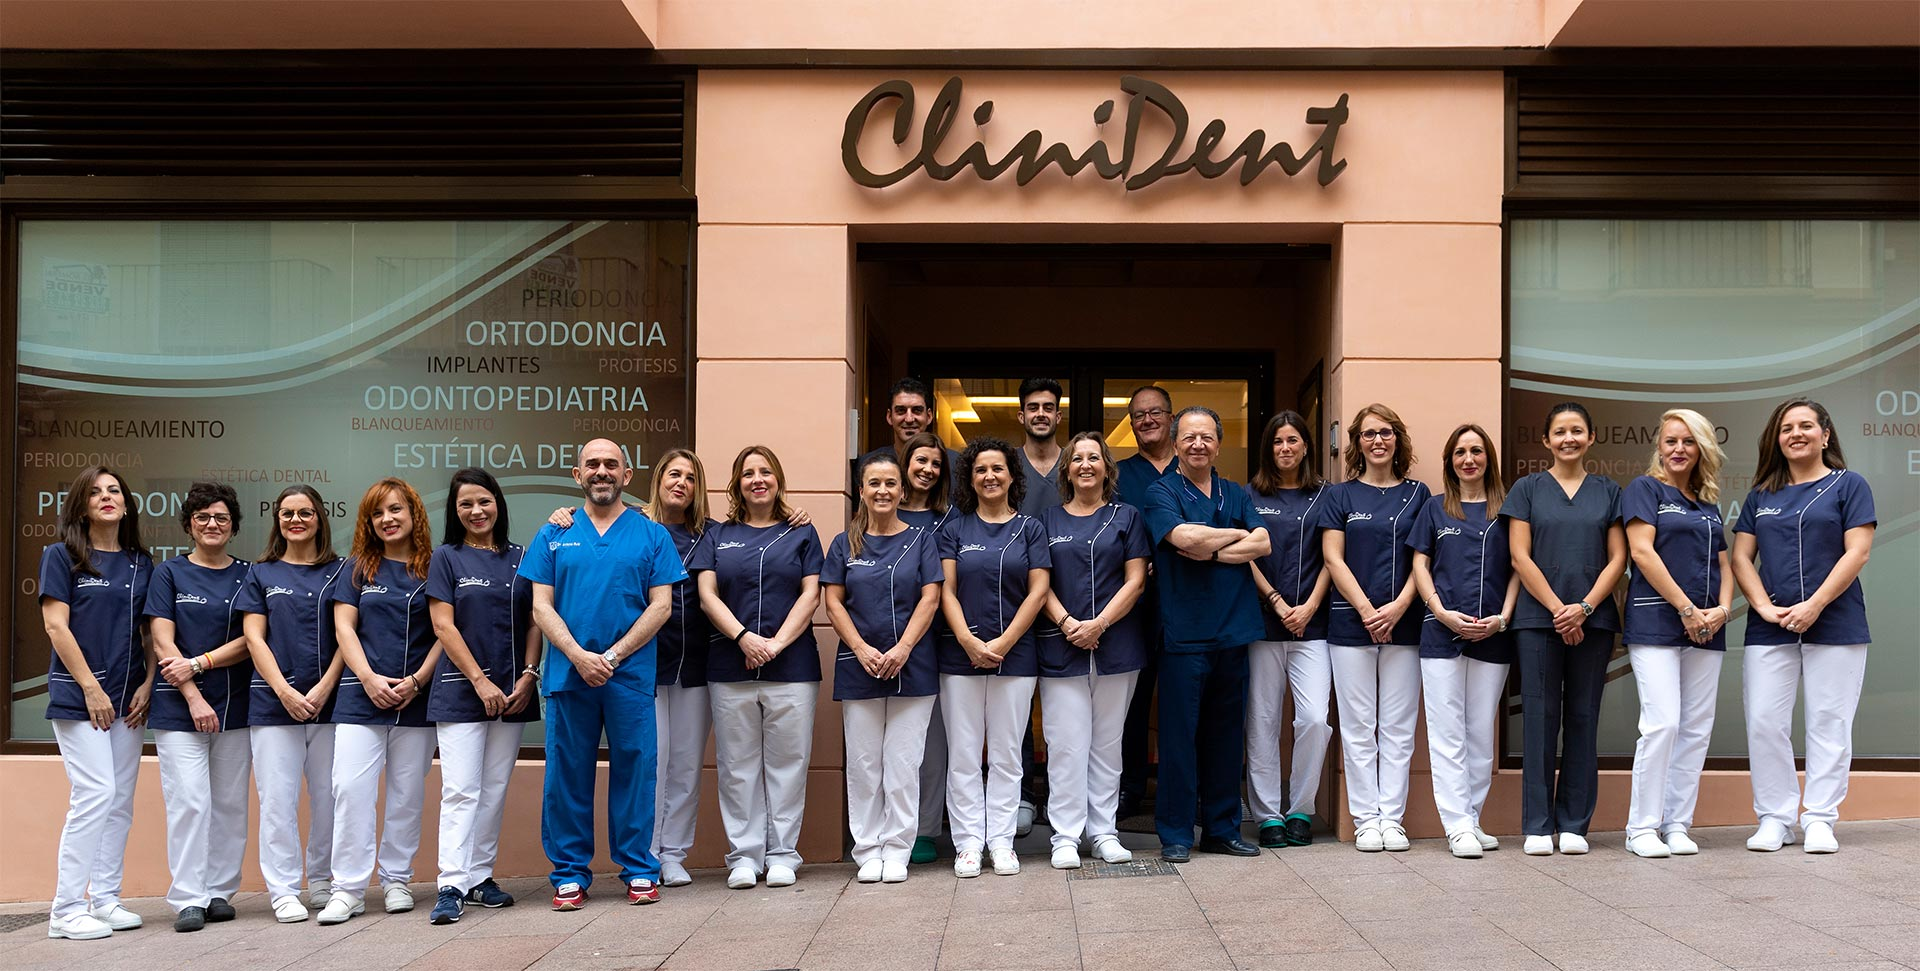 Equipo Clinident